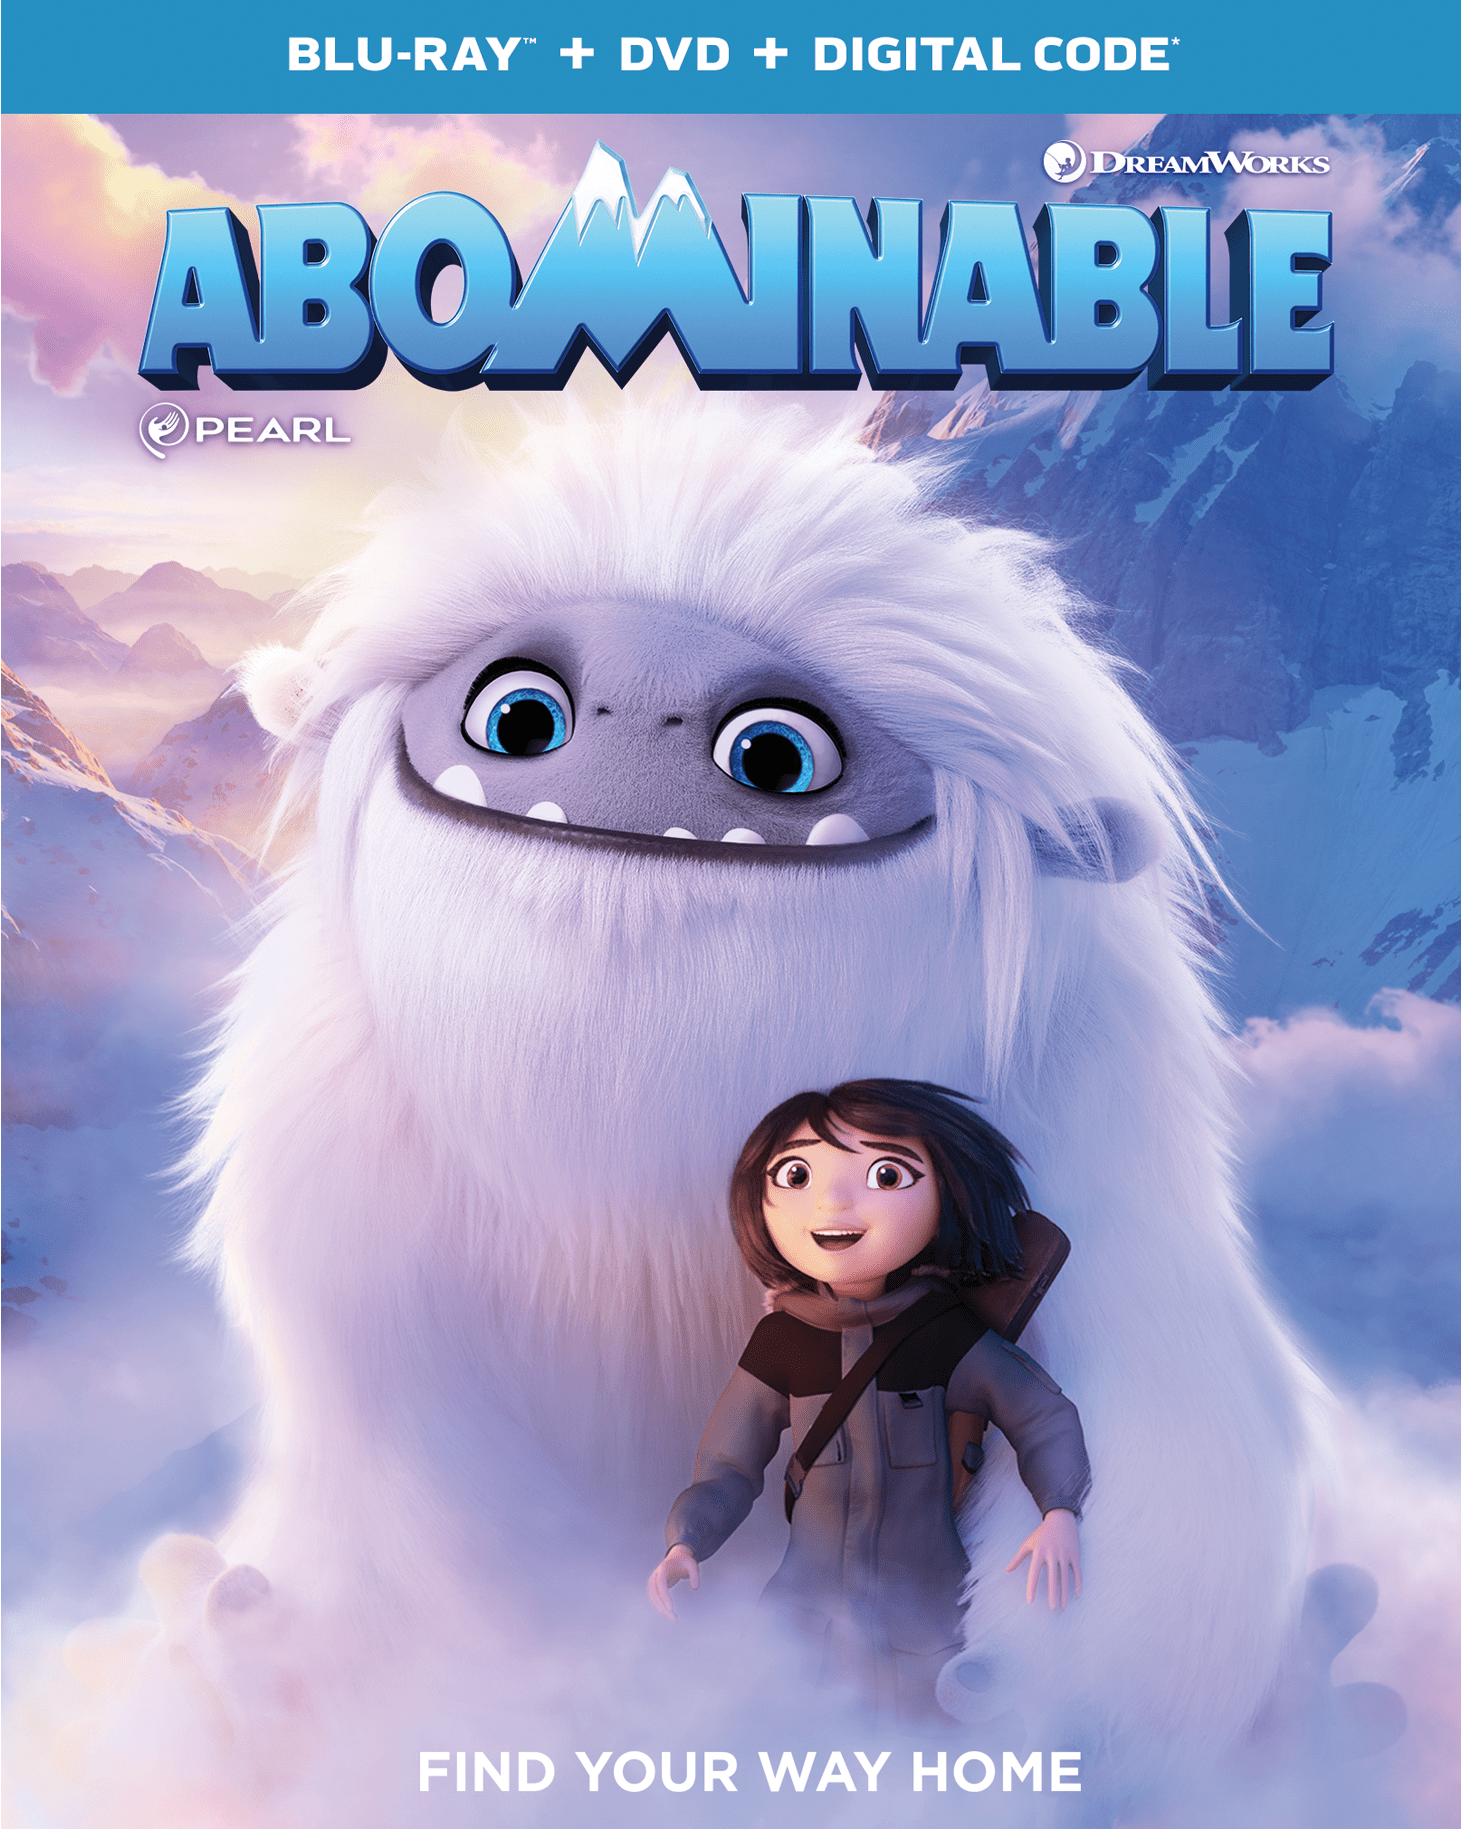 Abominable On Digital Dvd New Clips Activities Dreamworks Animation Animation Animated Movies